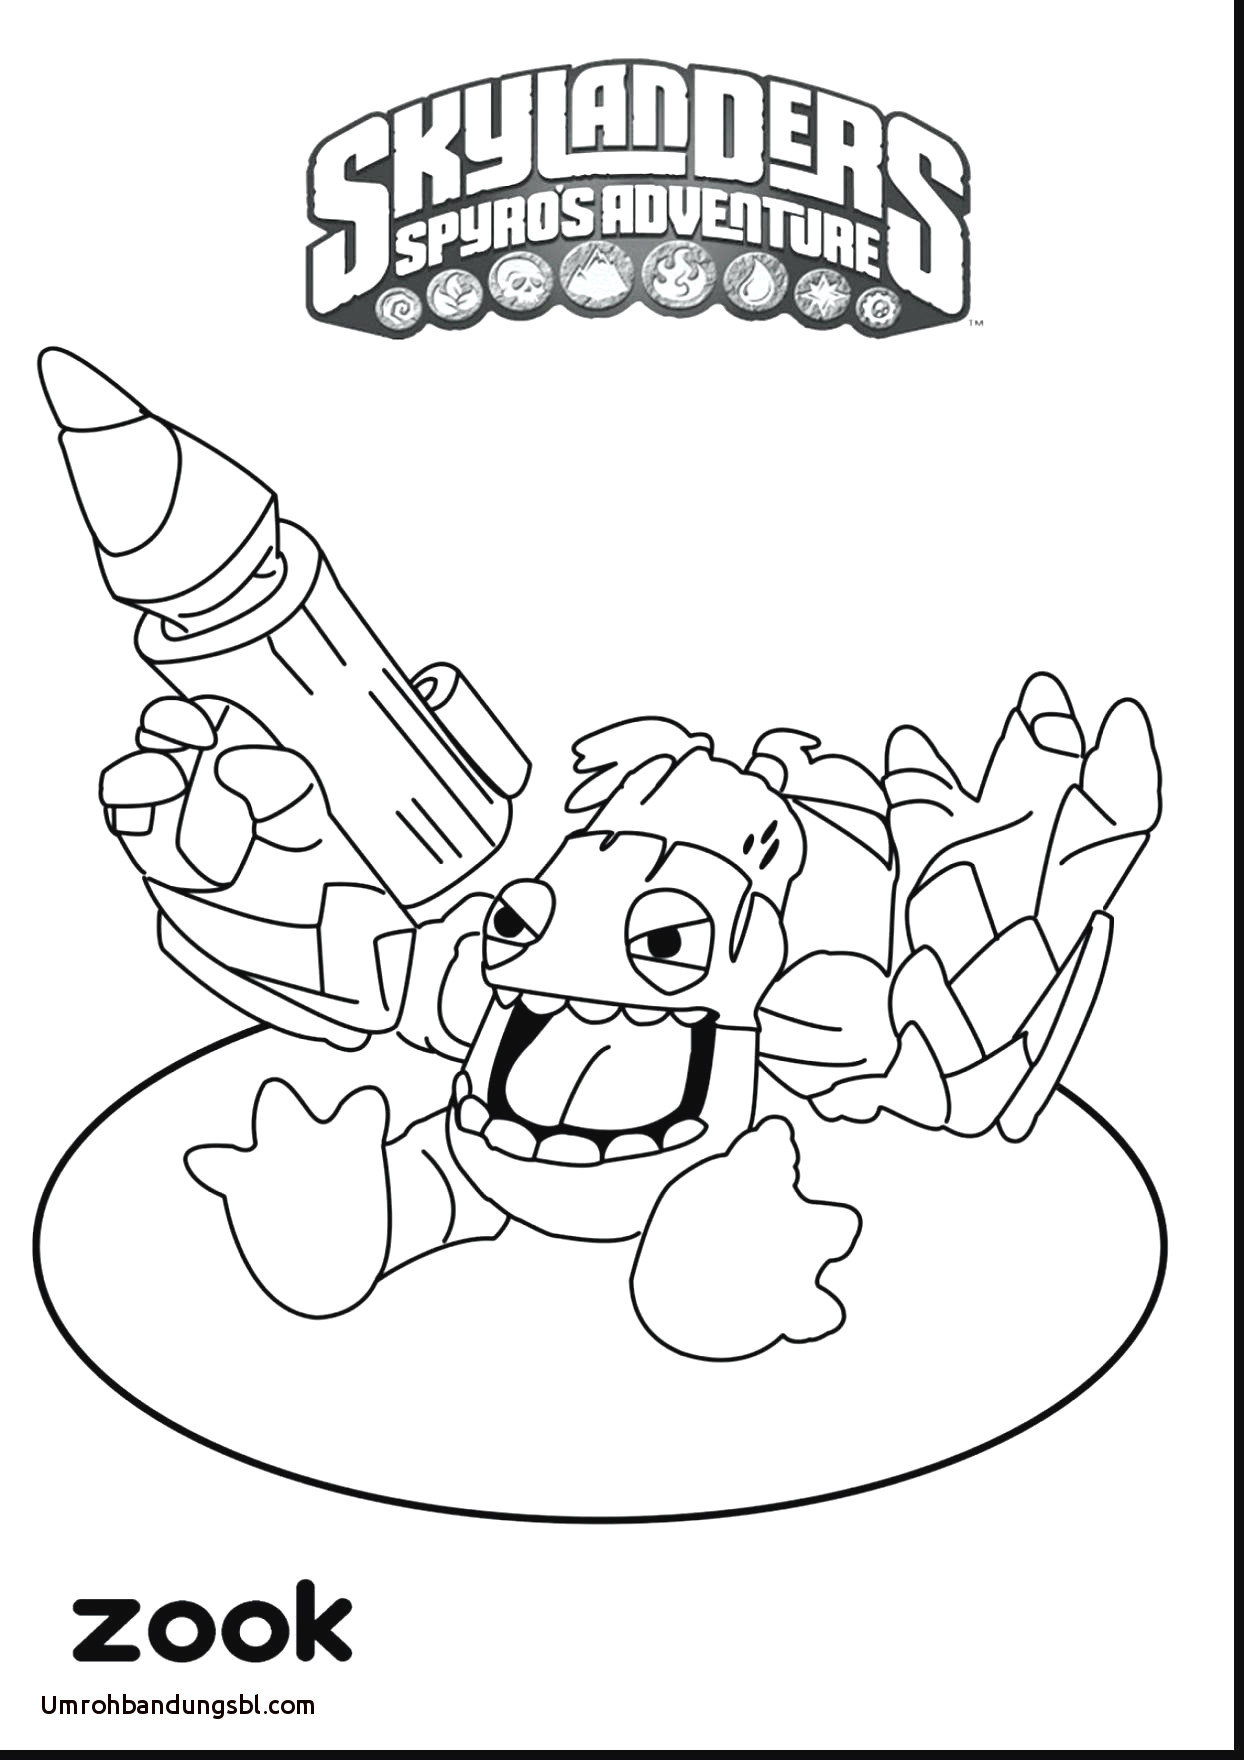 coloring pages game Download-Harvest Coloring Pages Luxury Fox Coloring Pages Elegant Page Coloring 0d Modokom – Fun Time 7-j